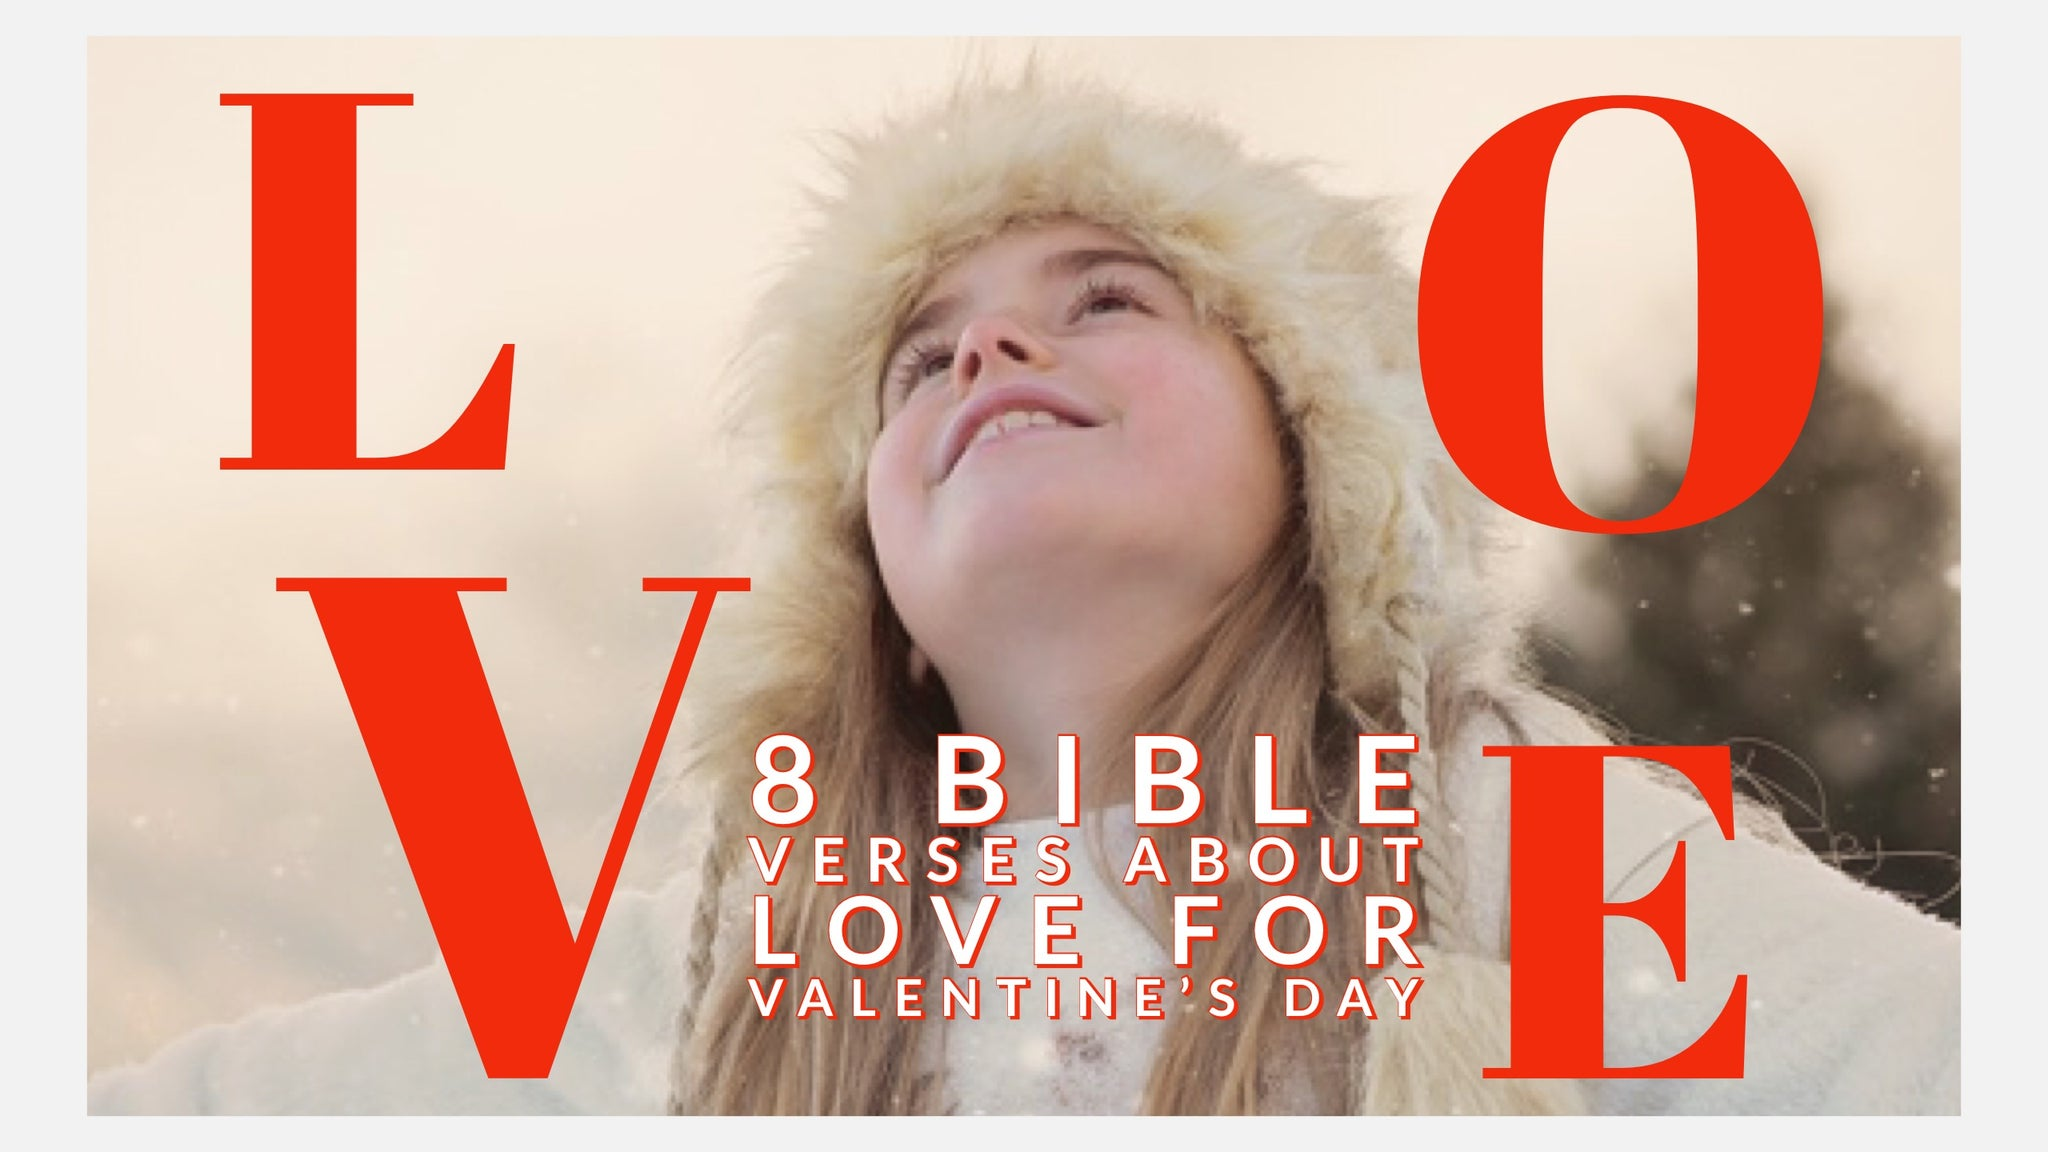 8 Bible Verses About Love for Valentine's Day